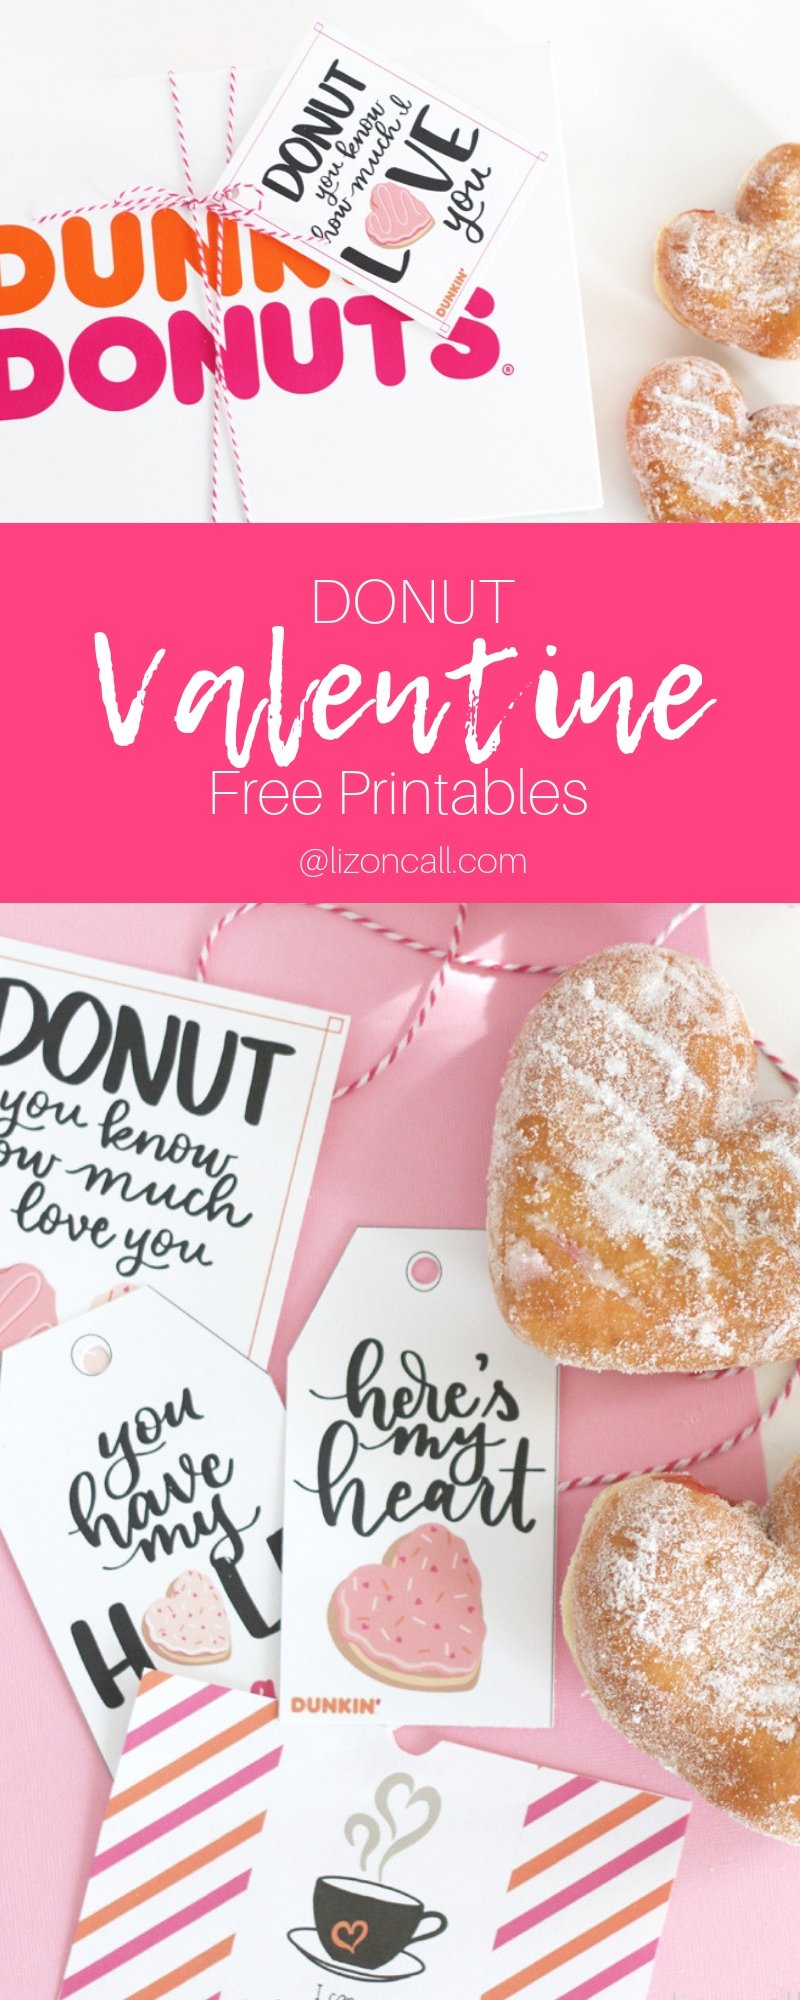 Donut Valentine printables, heart shaped donuts, donut tag tied to a box of donuts.